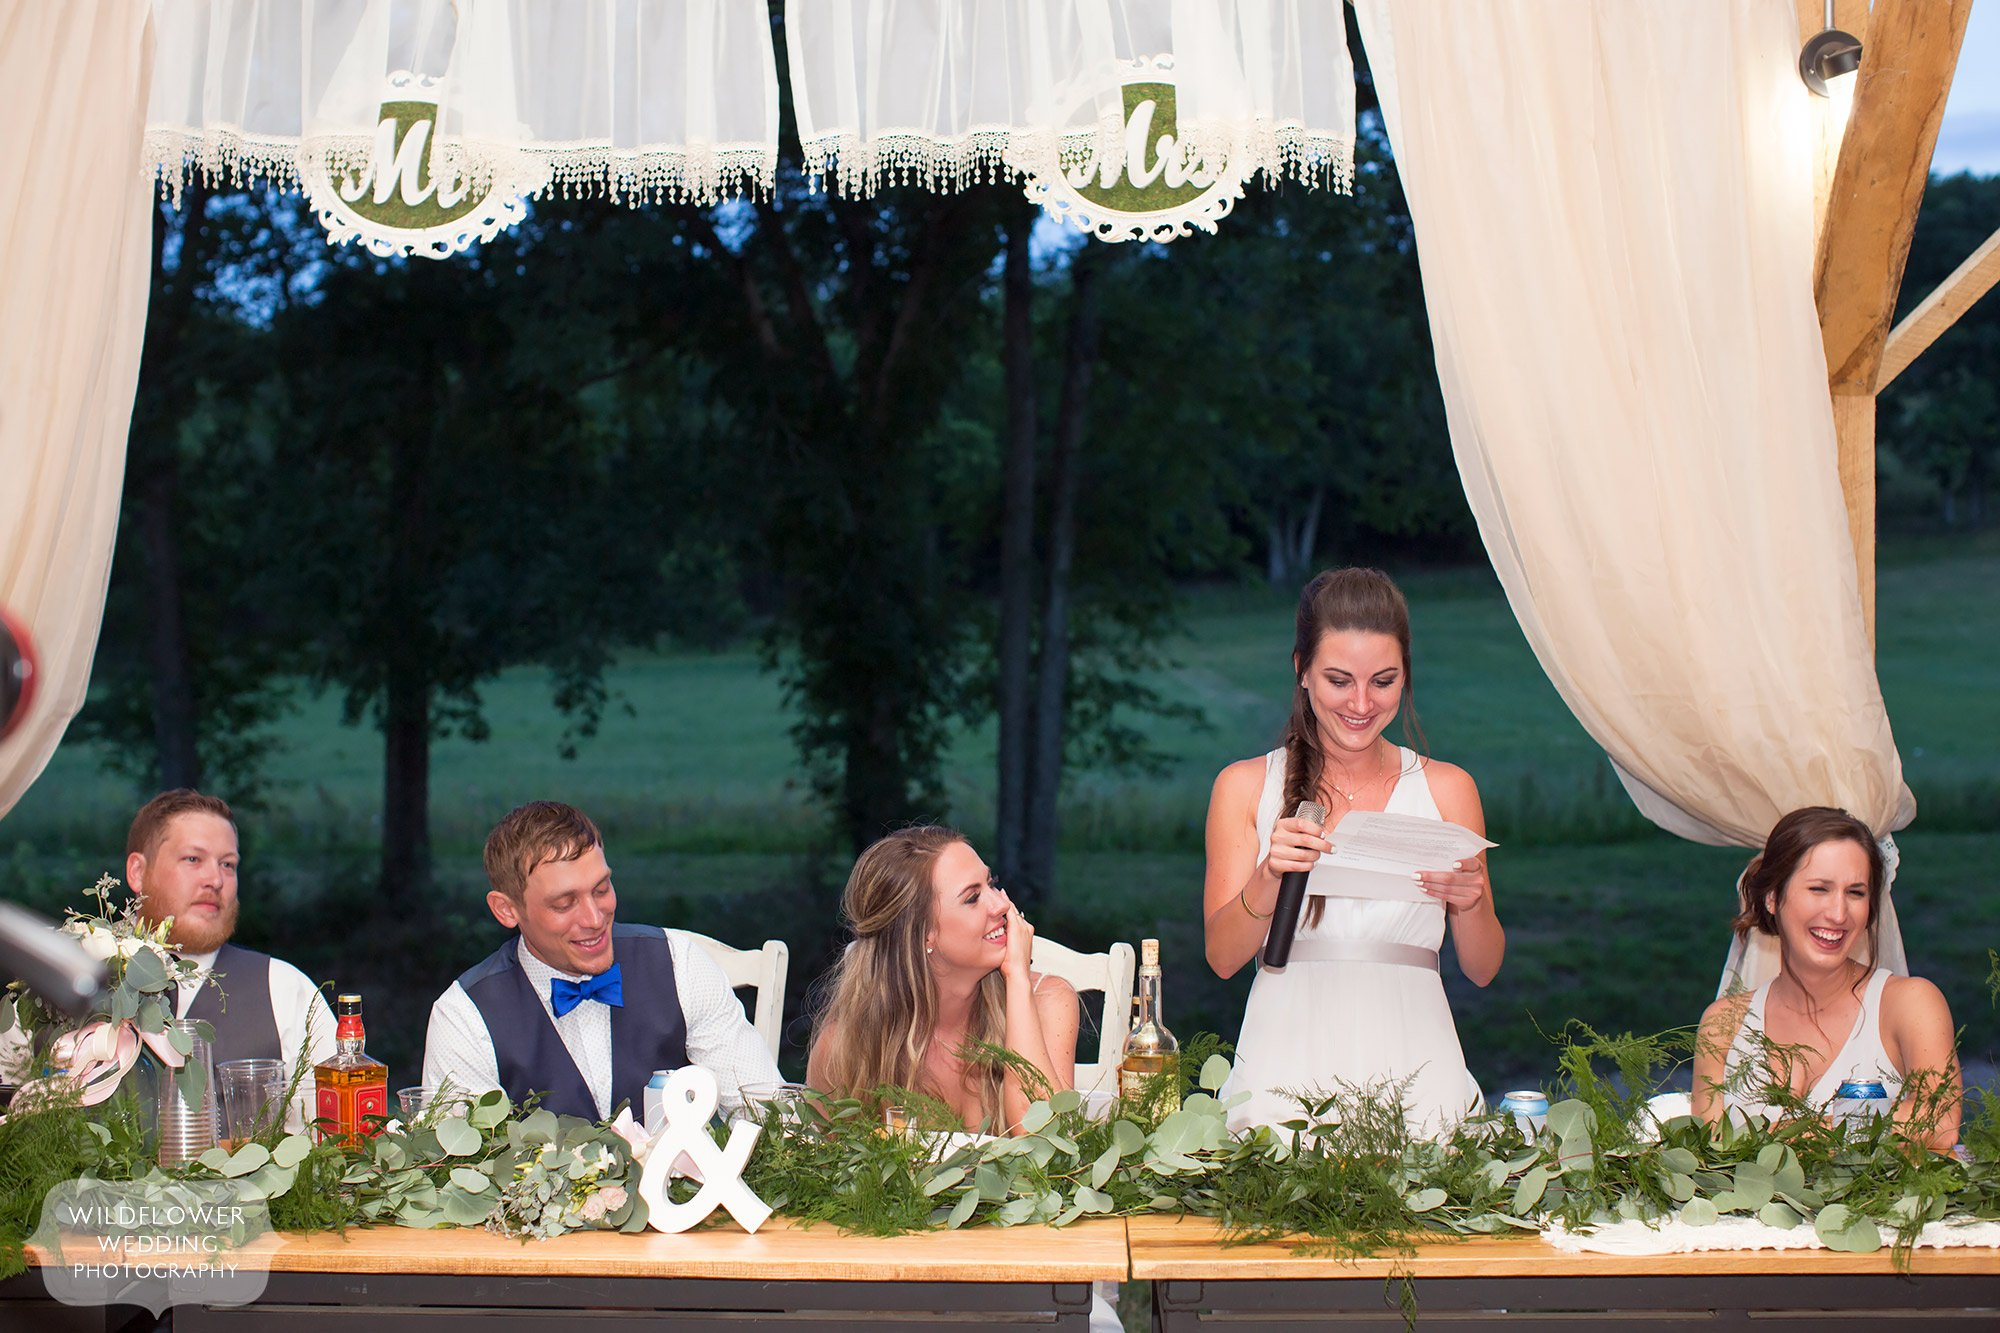 The maid of honor gives a speech while the bride and groom laugh under the covered pavilion for dinner.